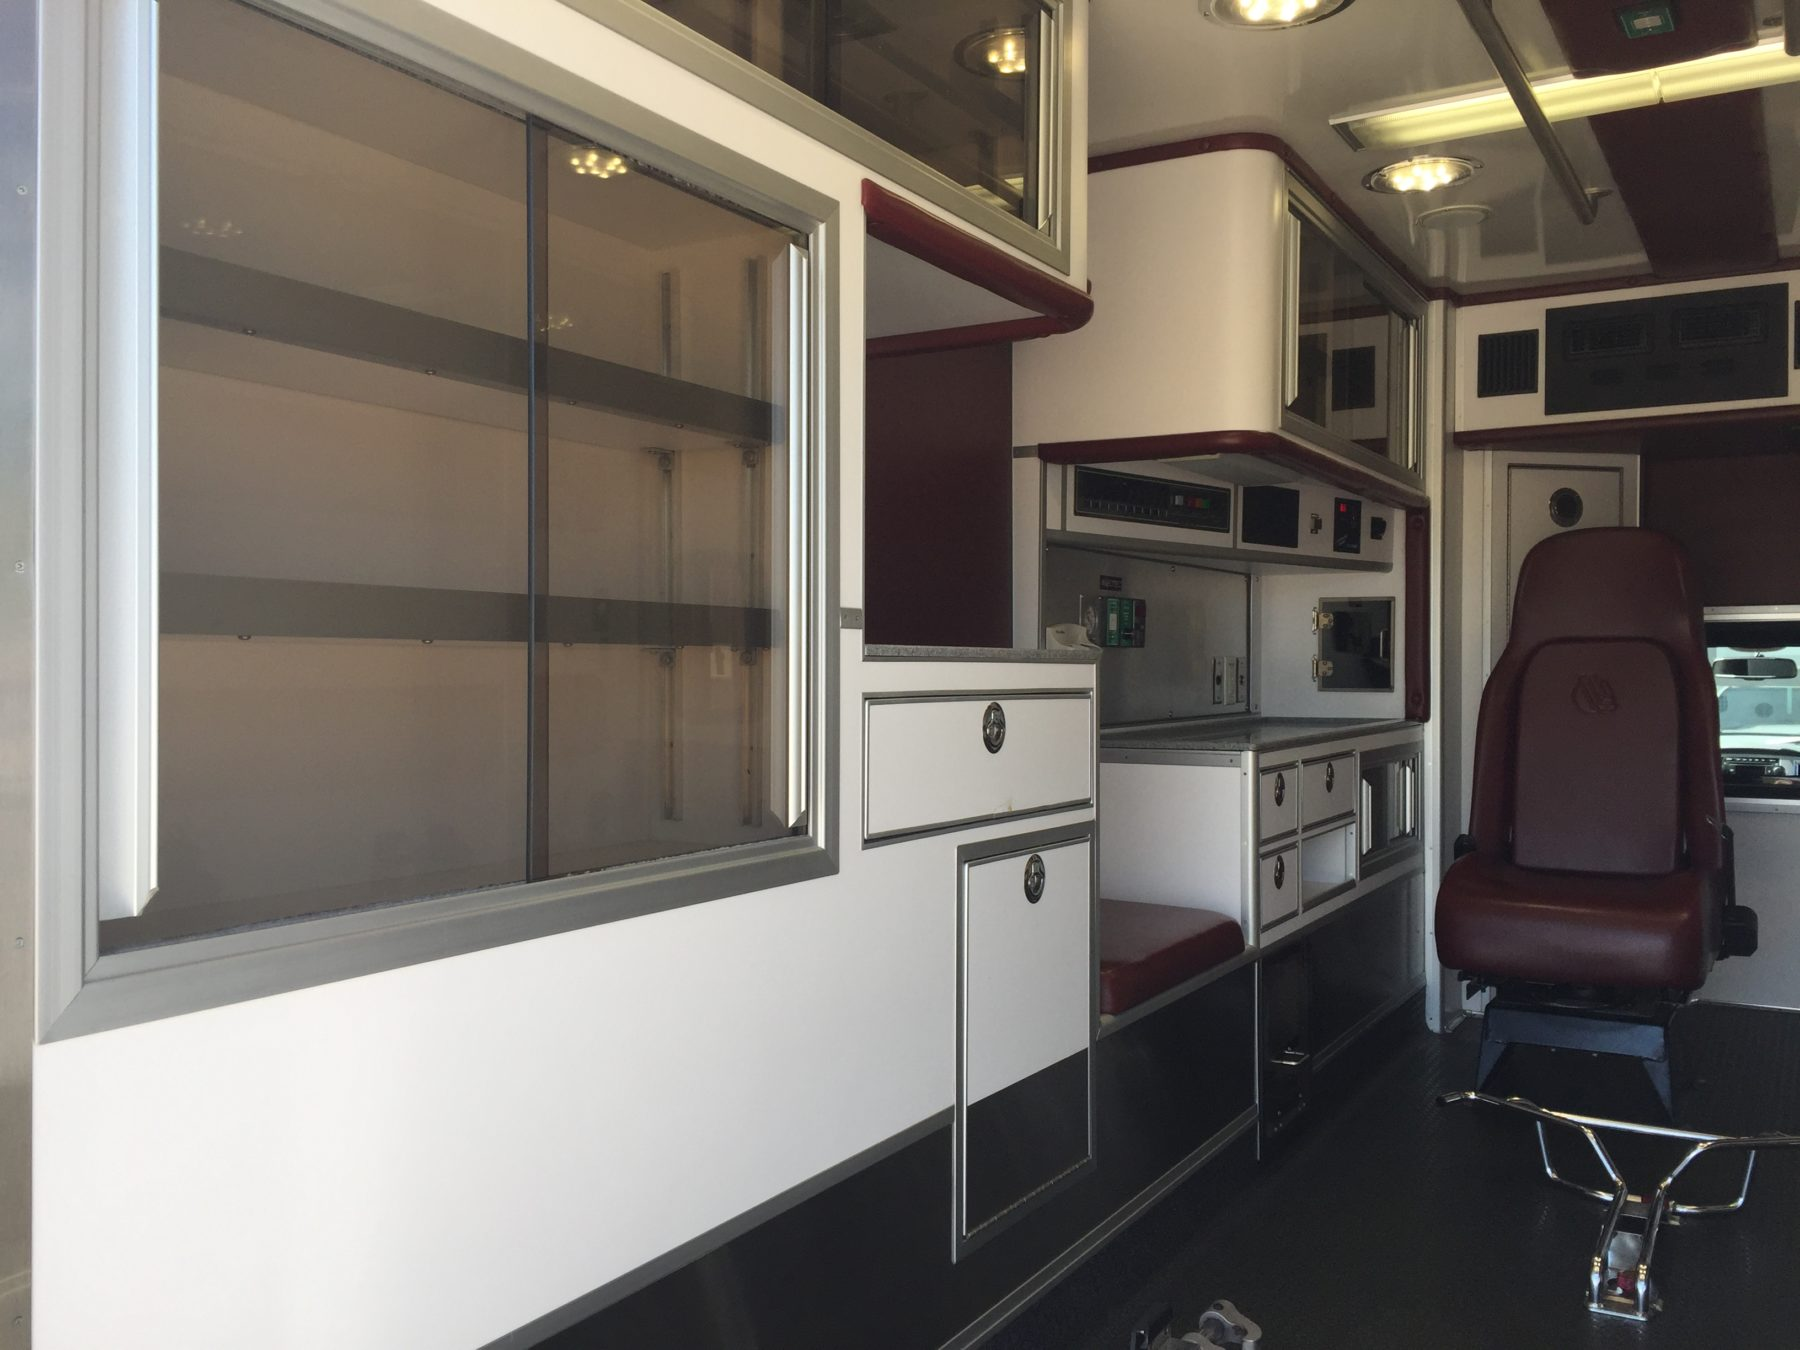 2009 Dodge 4500 Heavy Duty Ambulance For Sale – Picture 11